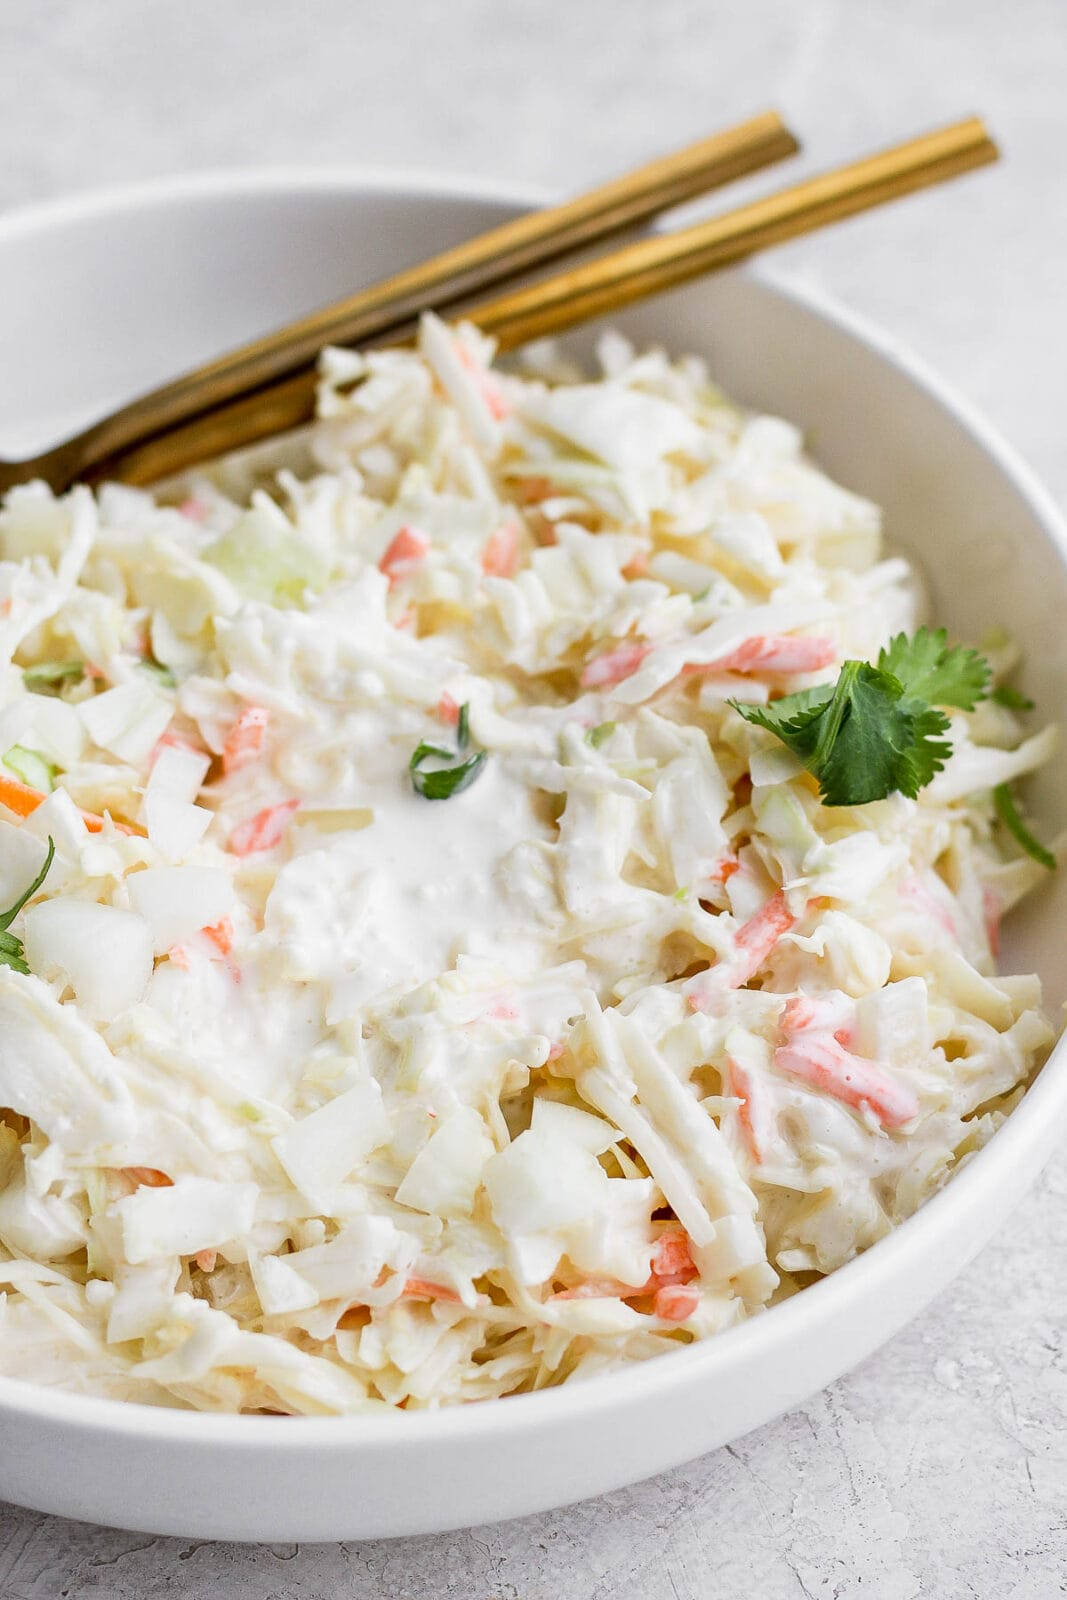 A bowl of creamy coleslaw with 2 spoons.